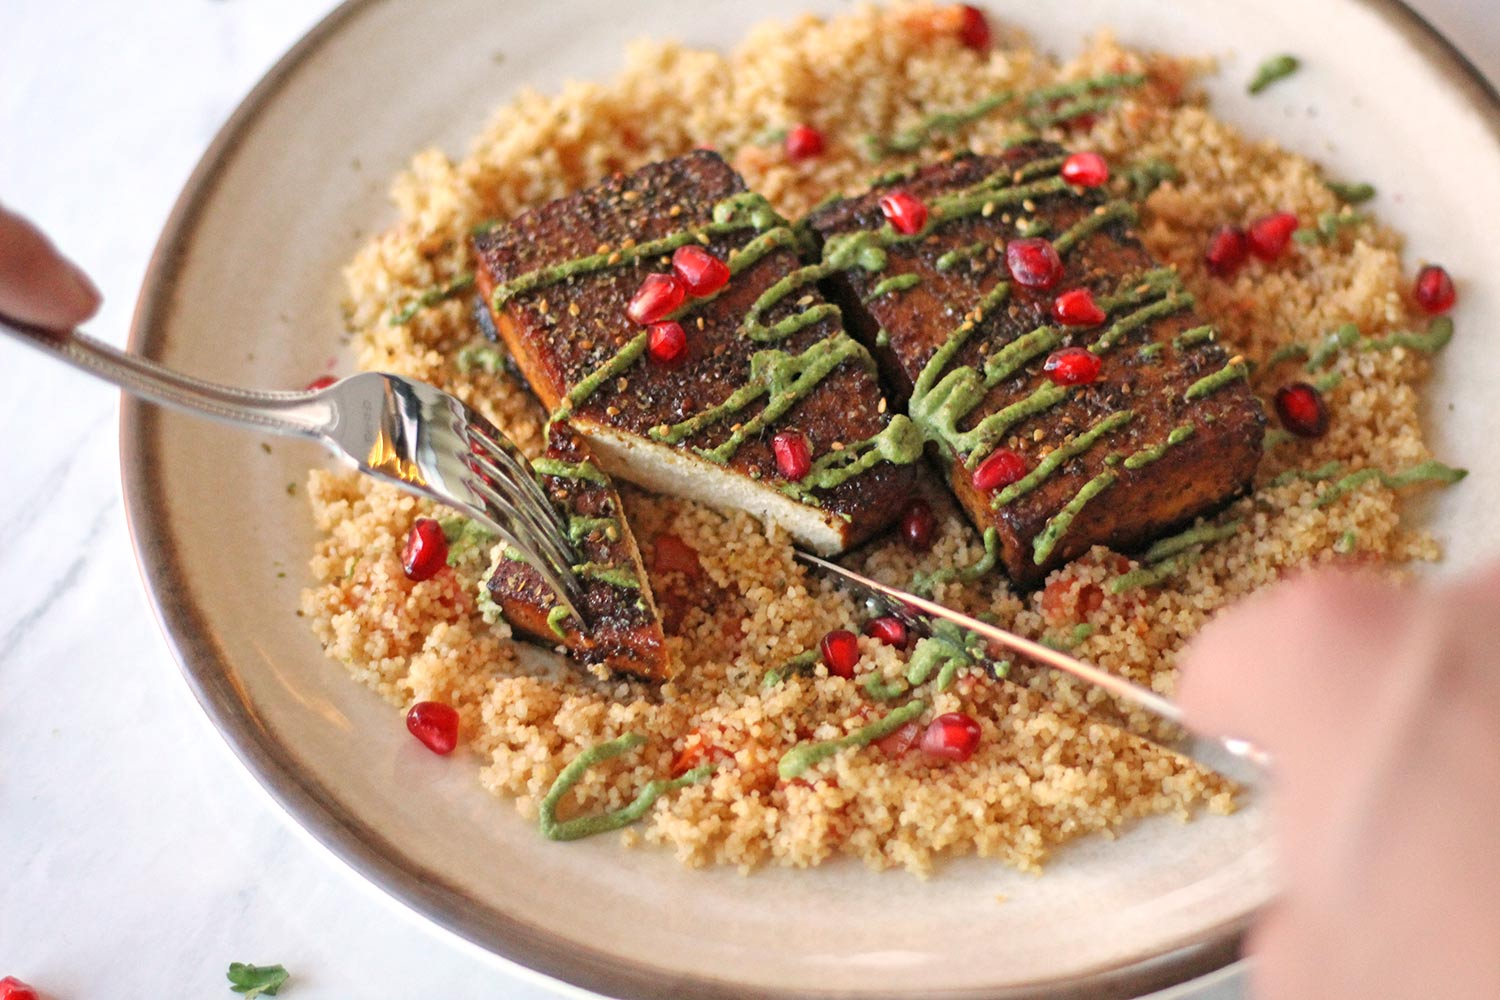 tofu steak zaatar crusted mediterranean zenaznzaatar zena food blog vegan vegetarian plant based recipe healthy tahini